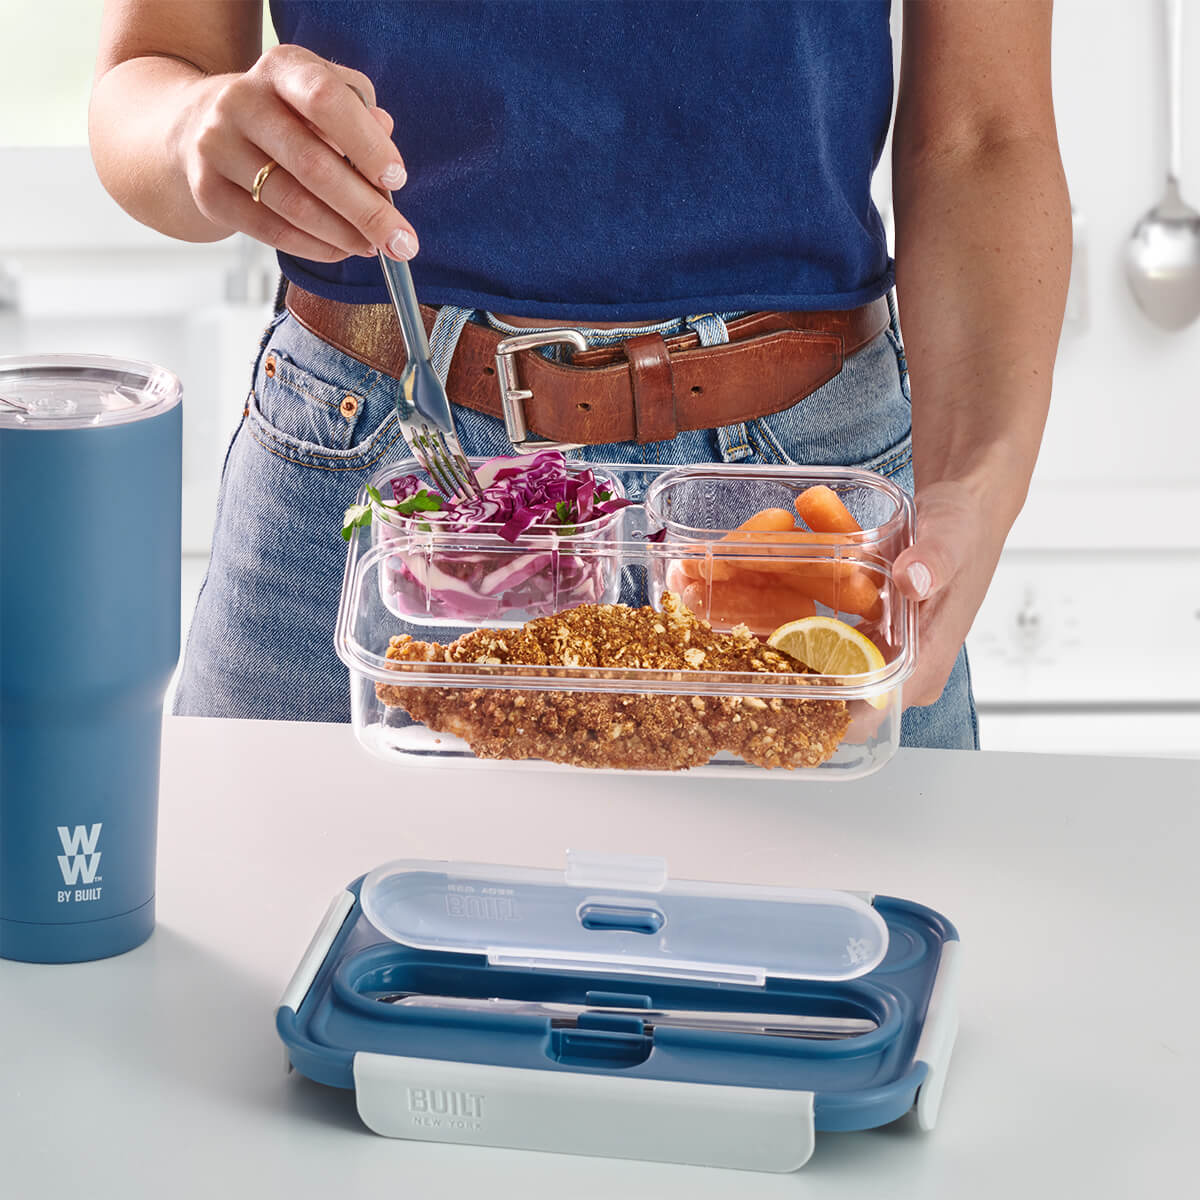 WW by Built 3 Compartment Container - lifestyle 2